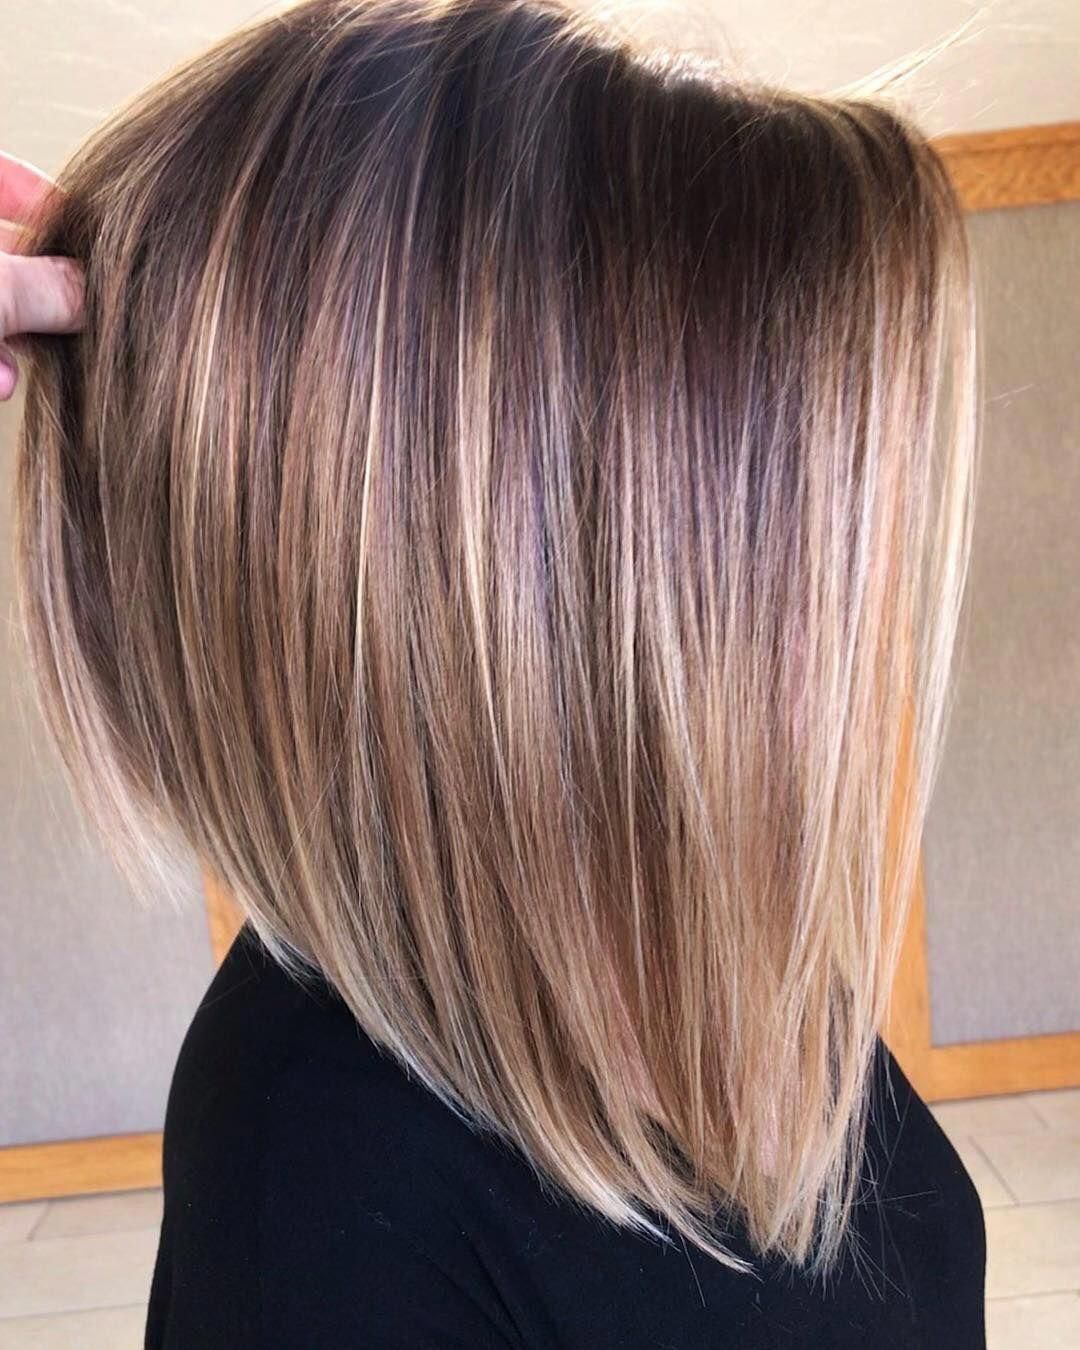 Pin On Short Hairstyles For Thick Hair Ideas